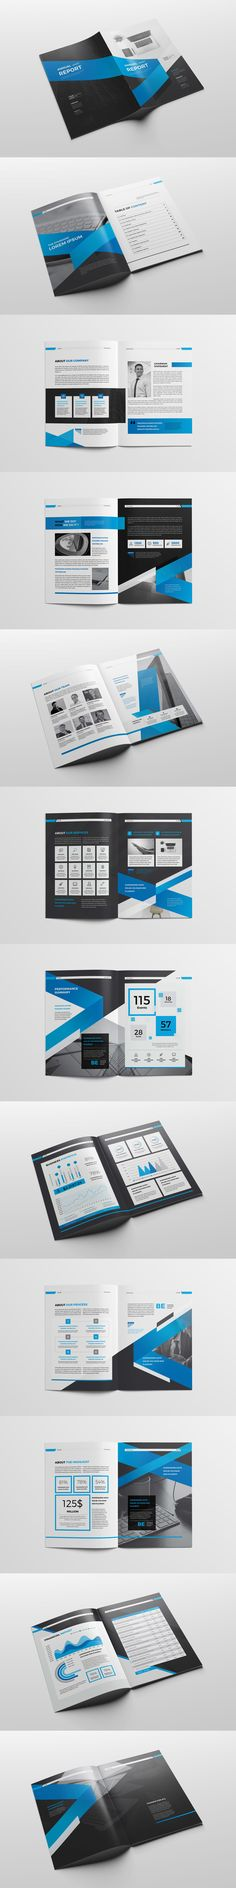 Blue Square Annual Report Brochure Flyer Design Template Vector - annual report templates free download